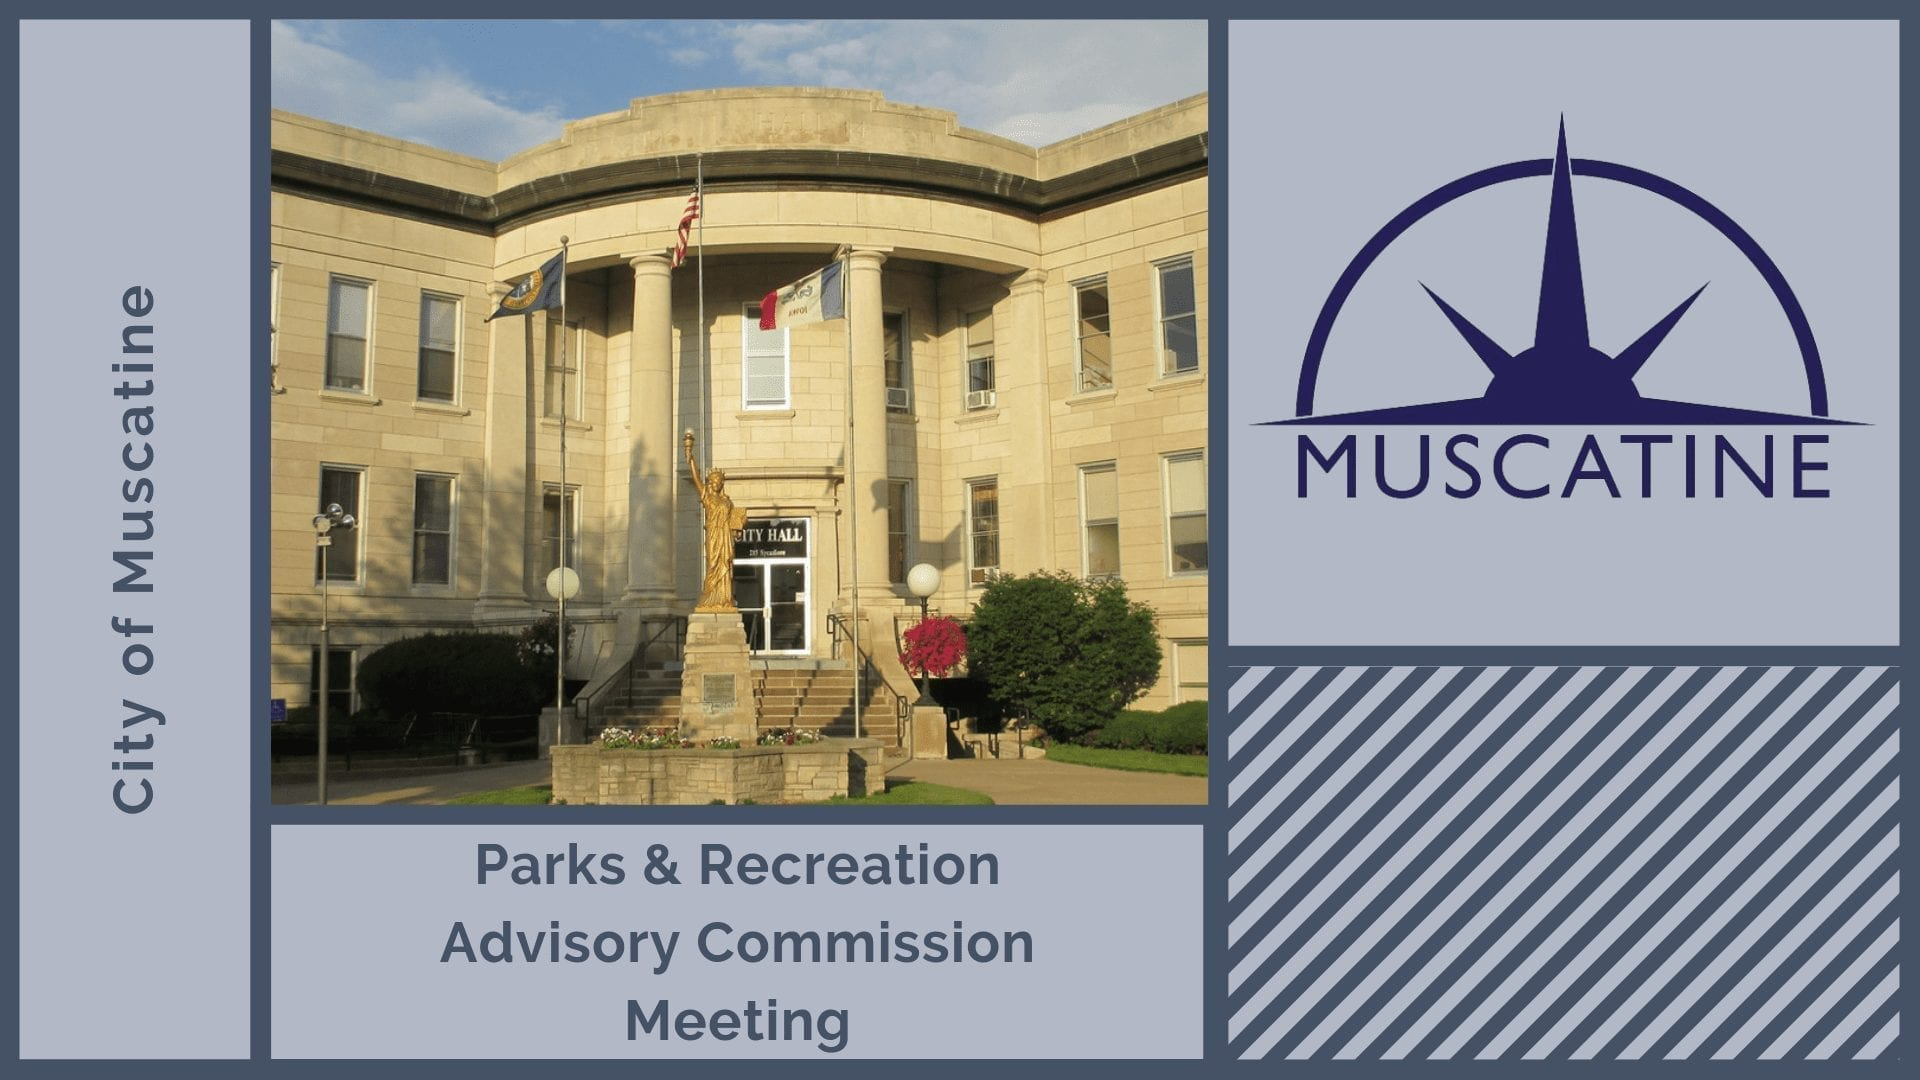 Parks & Recreation Advisory Commission